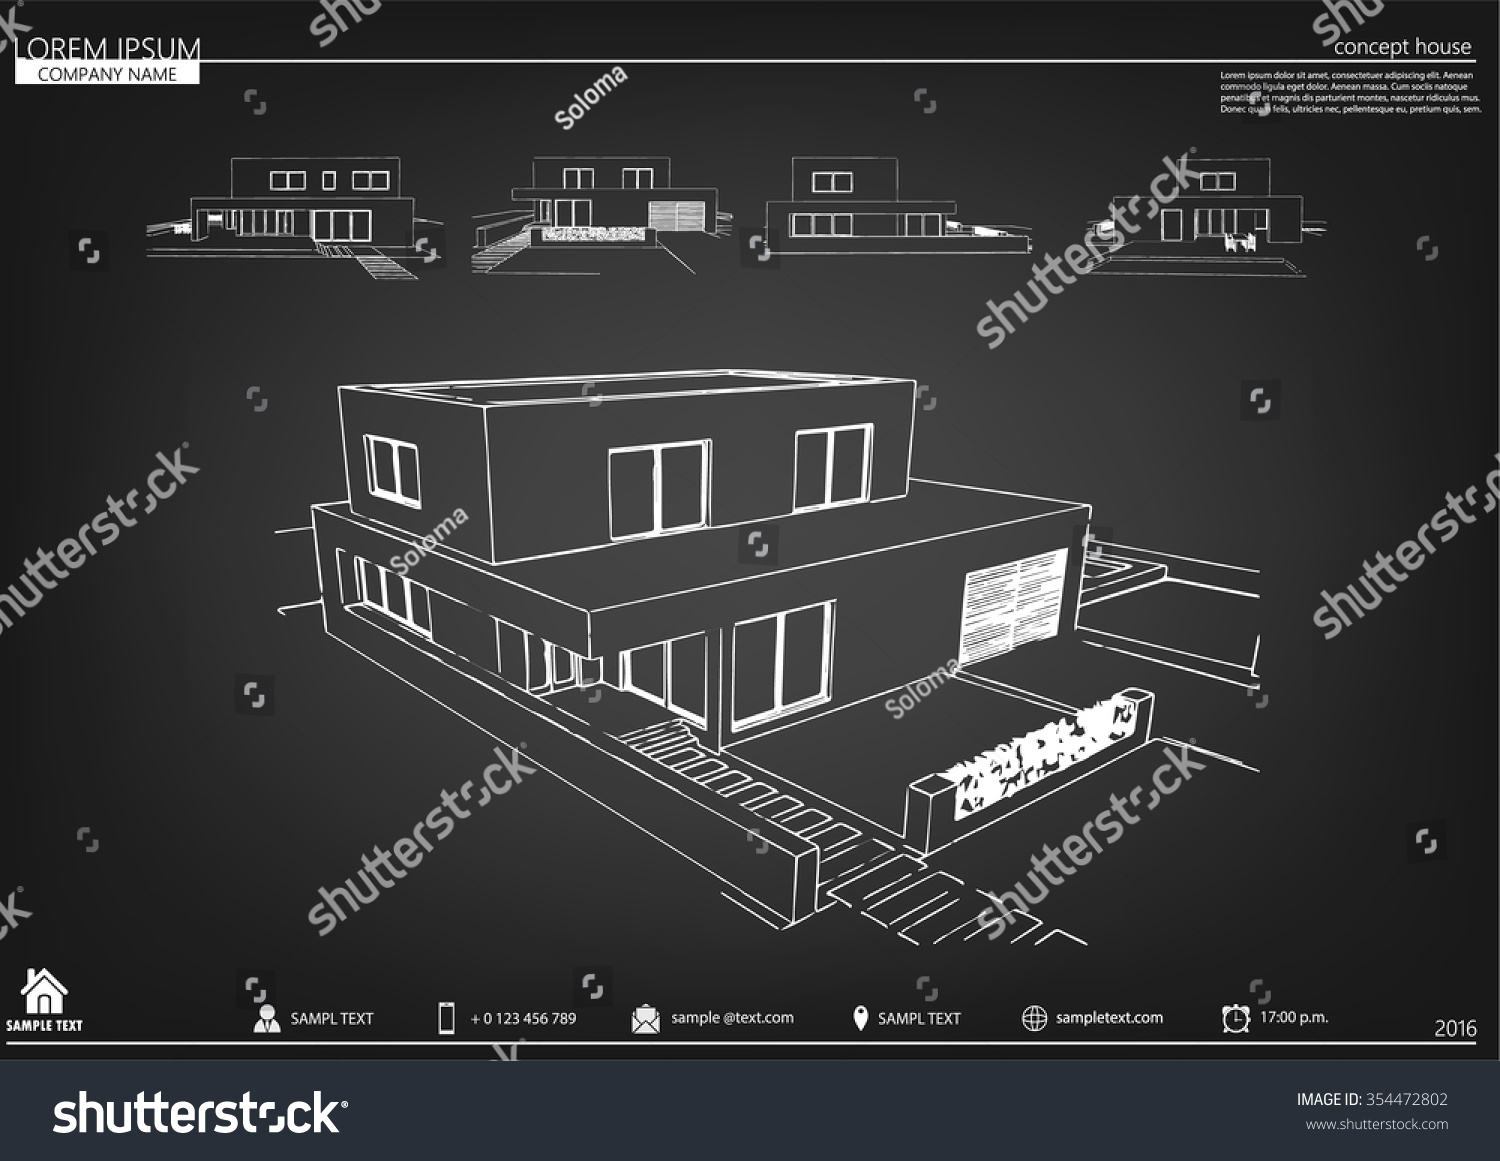 Wireframe blueprint drawing 3 d building vector stock photo photo wireframe blueprint drawing of 3d building vector architectural template background architectural drawing architectural malvernweather